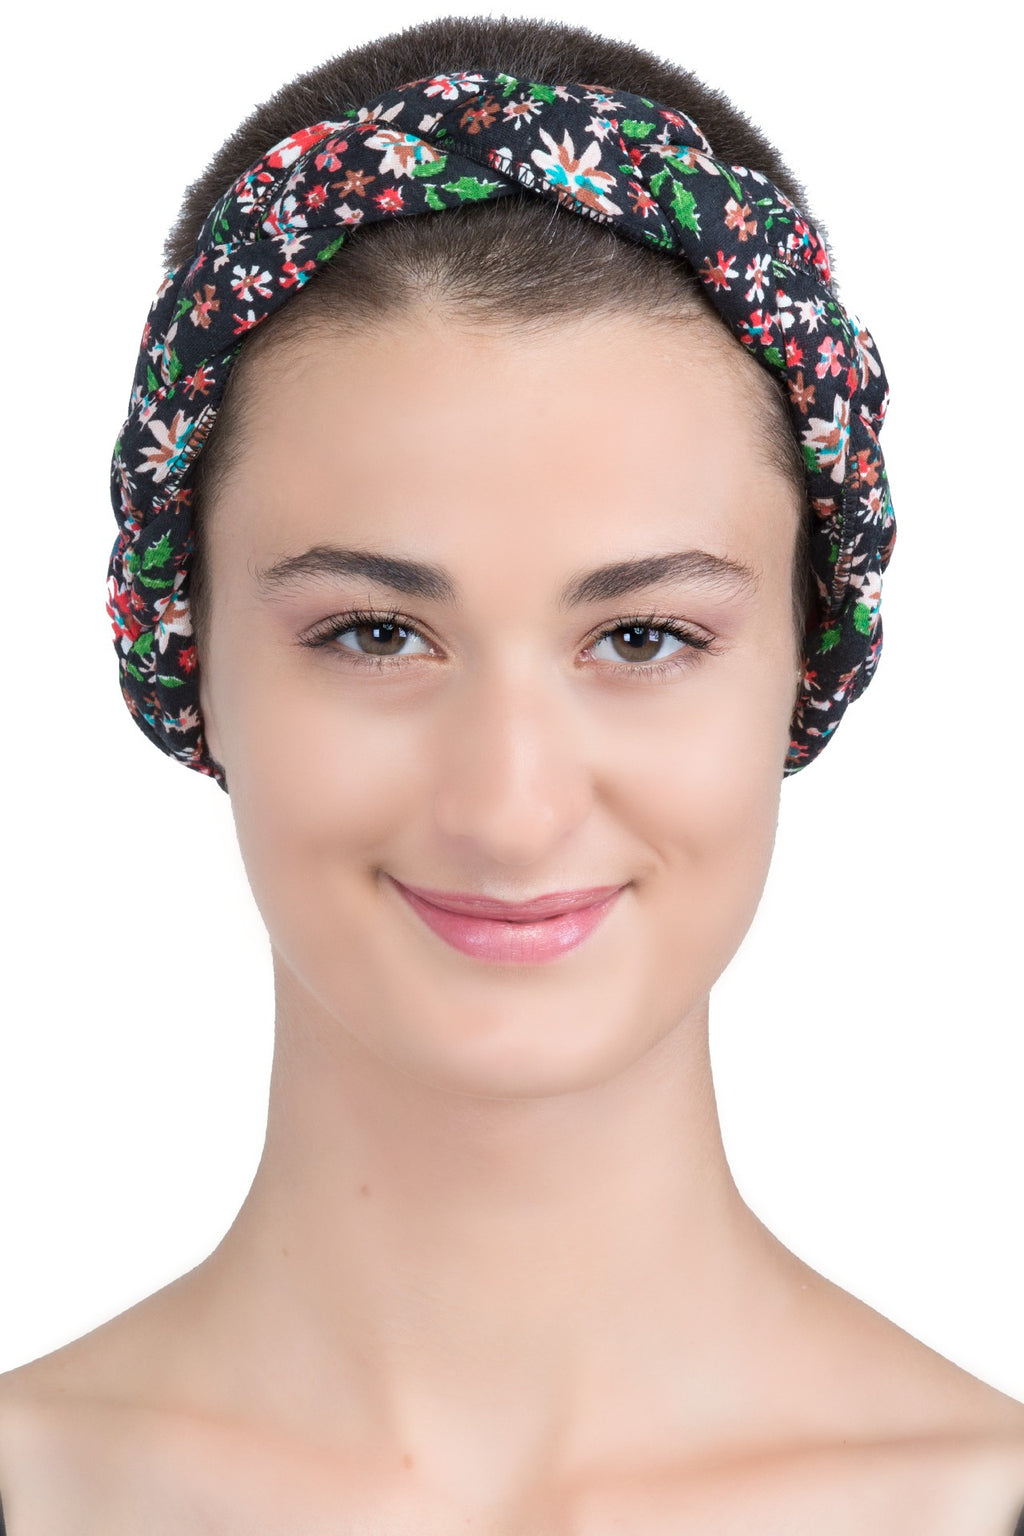 Braided Hairband, Headband (Black Floral)